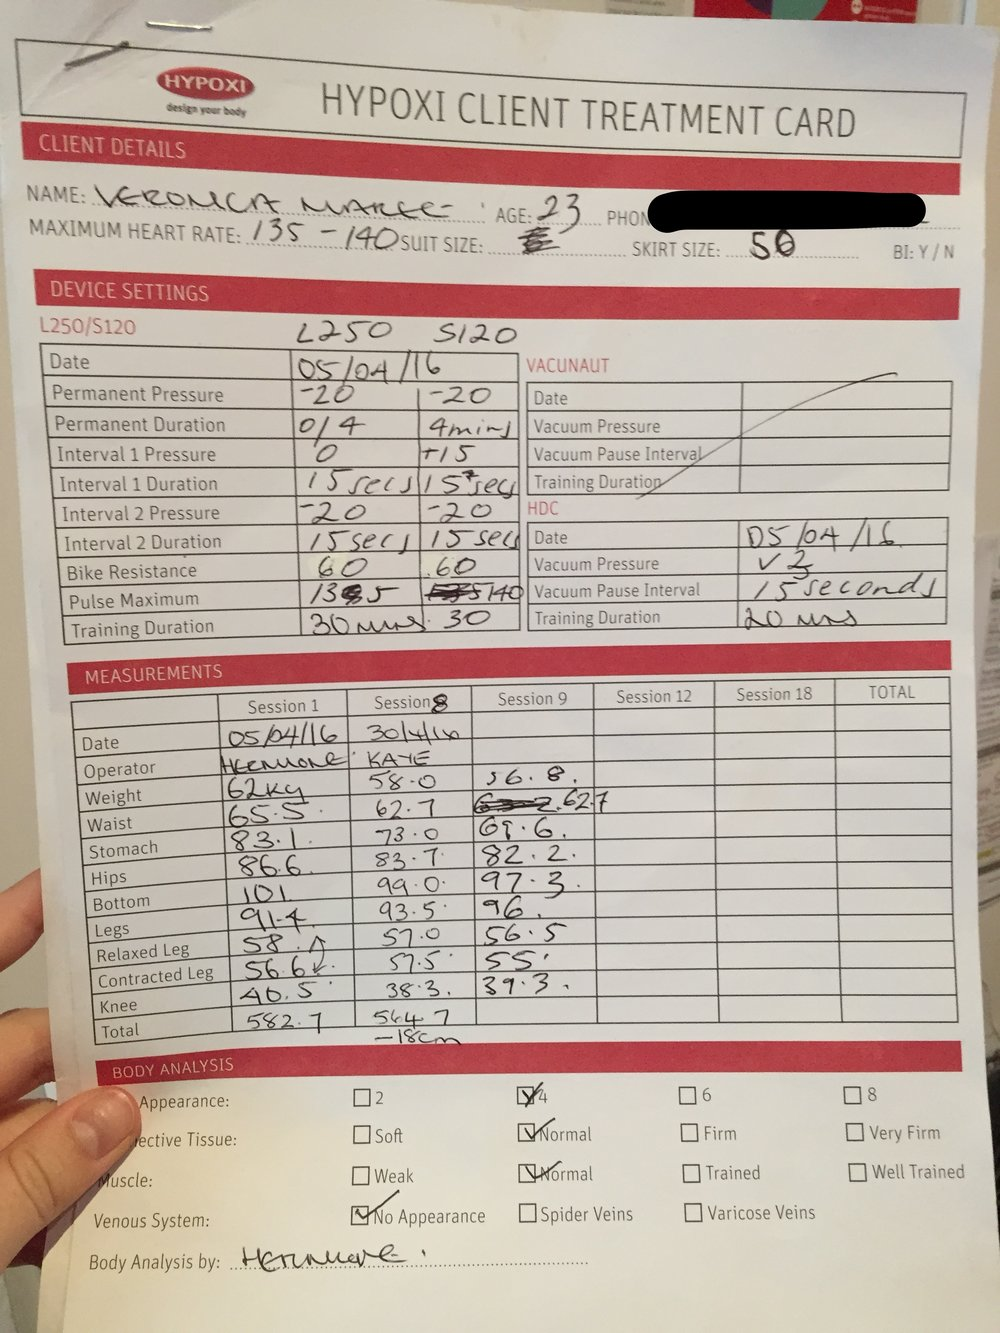 My before and after measurements. My legs gained a bit of muscle from my non Hypoxi days routine 9km walks.